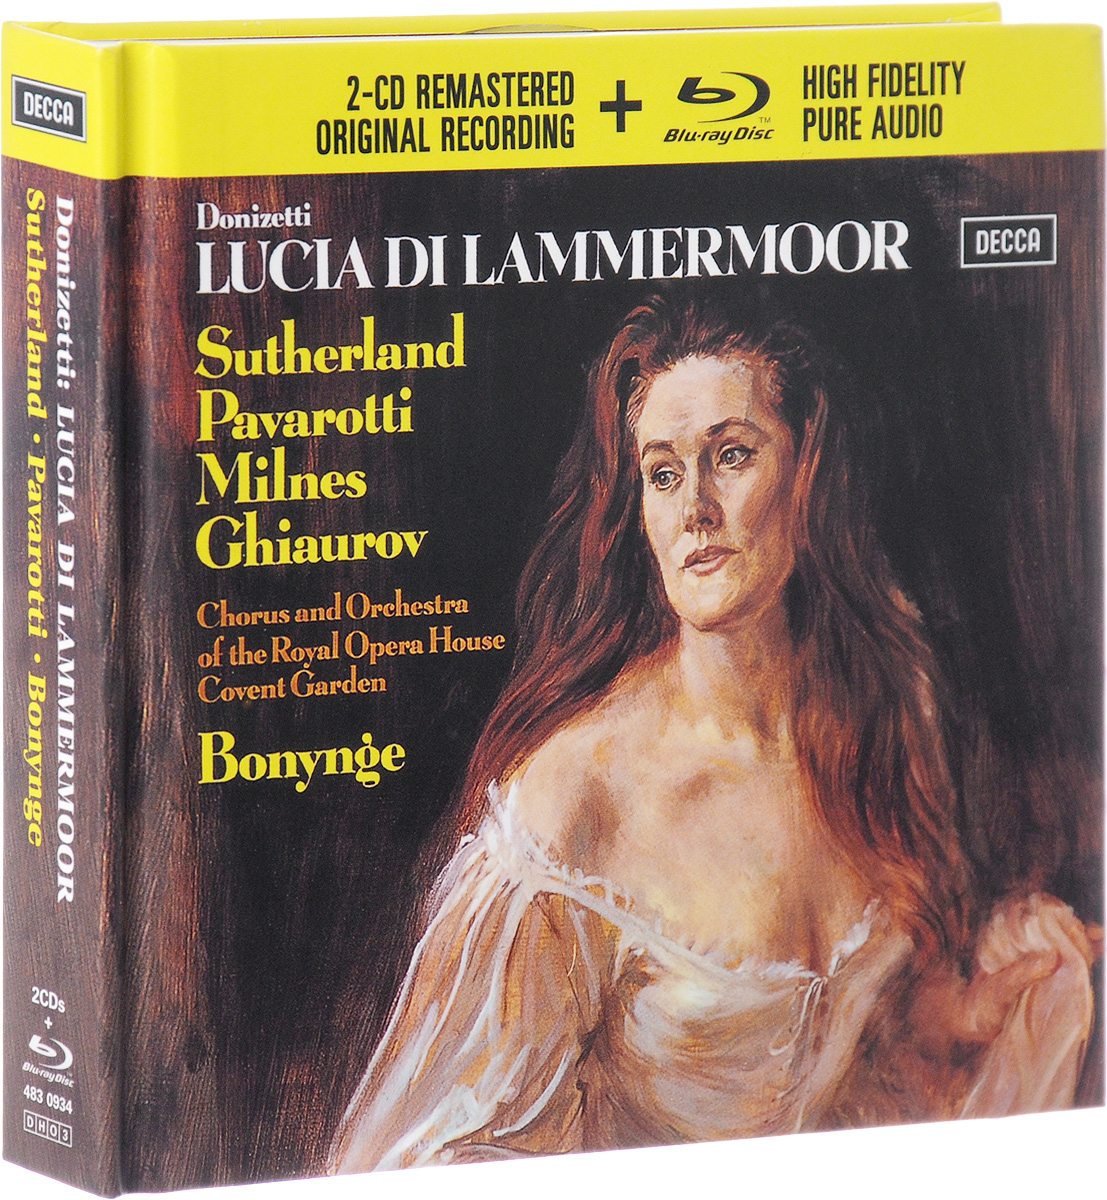 Ричард Бонинг,Chorus Of The Royal Opera House, Covent Garden,Orchestra Of The Royal Opera House Covent Garden,Дуглас Робинсон Richard Bonynge. Donizetti. Lucia Di Lammermoor (2 CD + Blu-ray) the royal ballet covent garden romeo